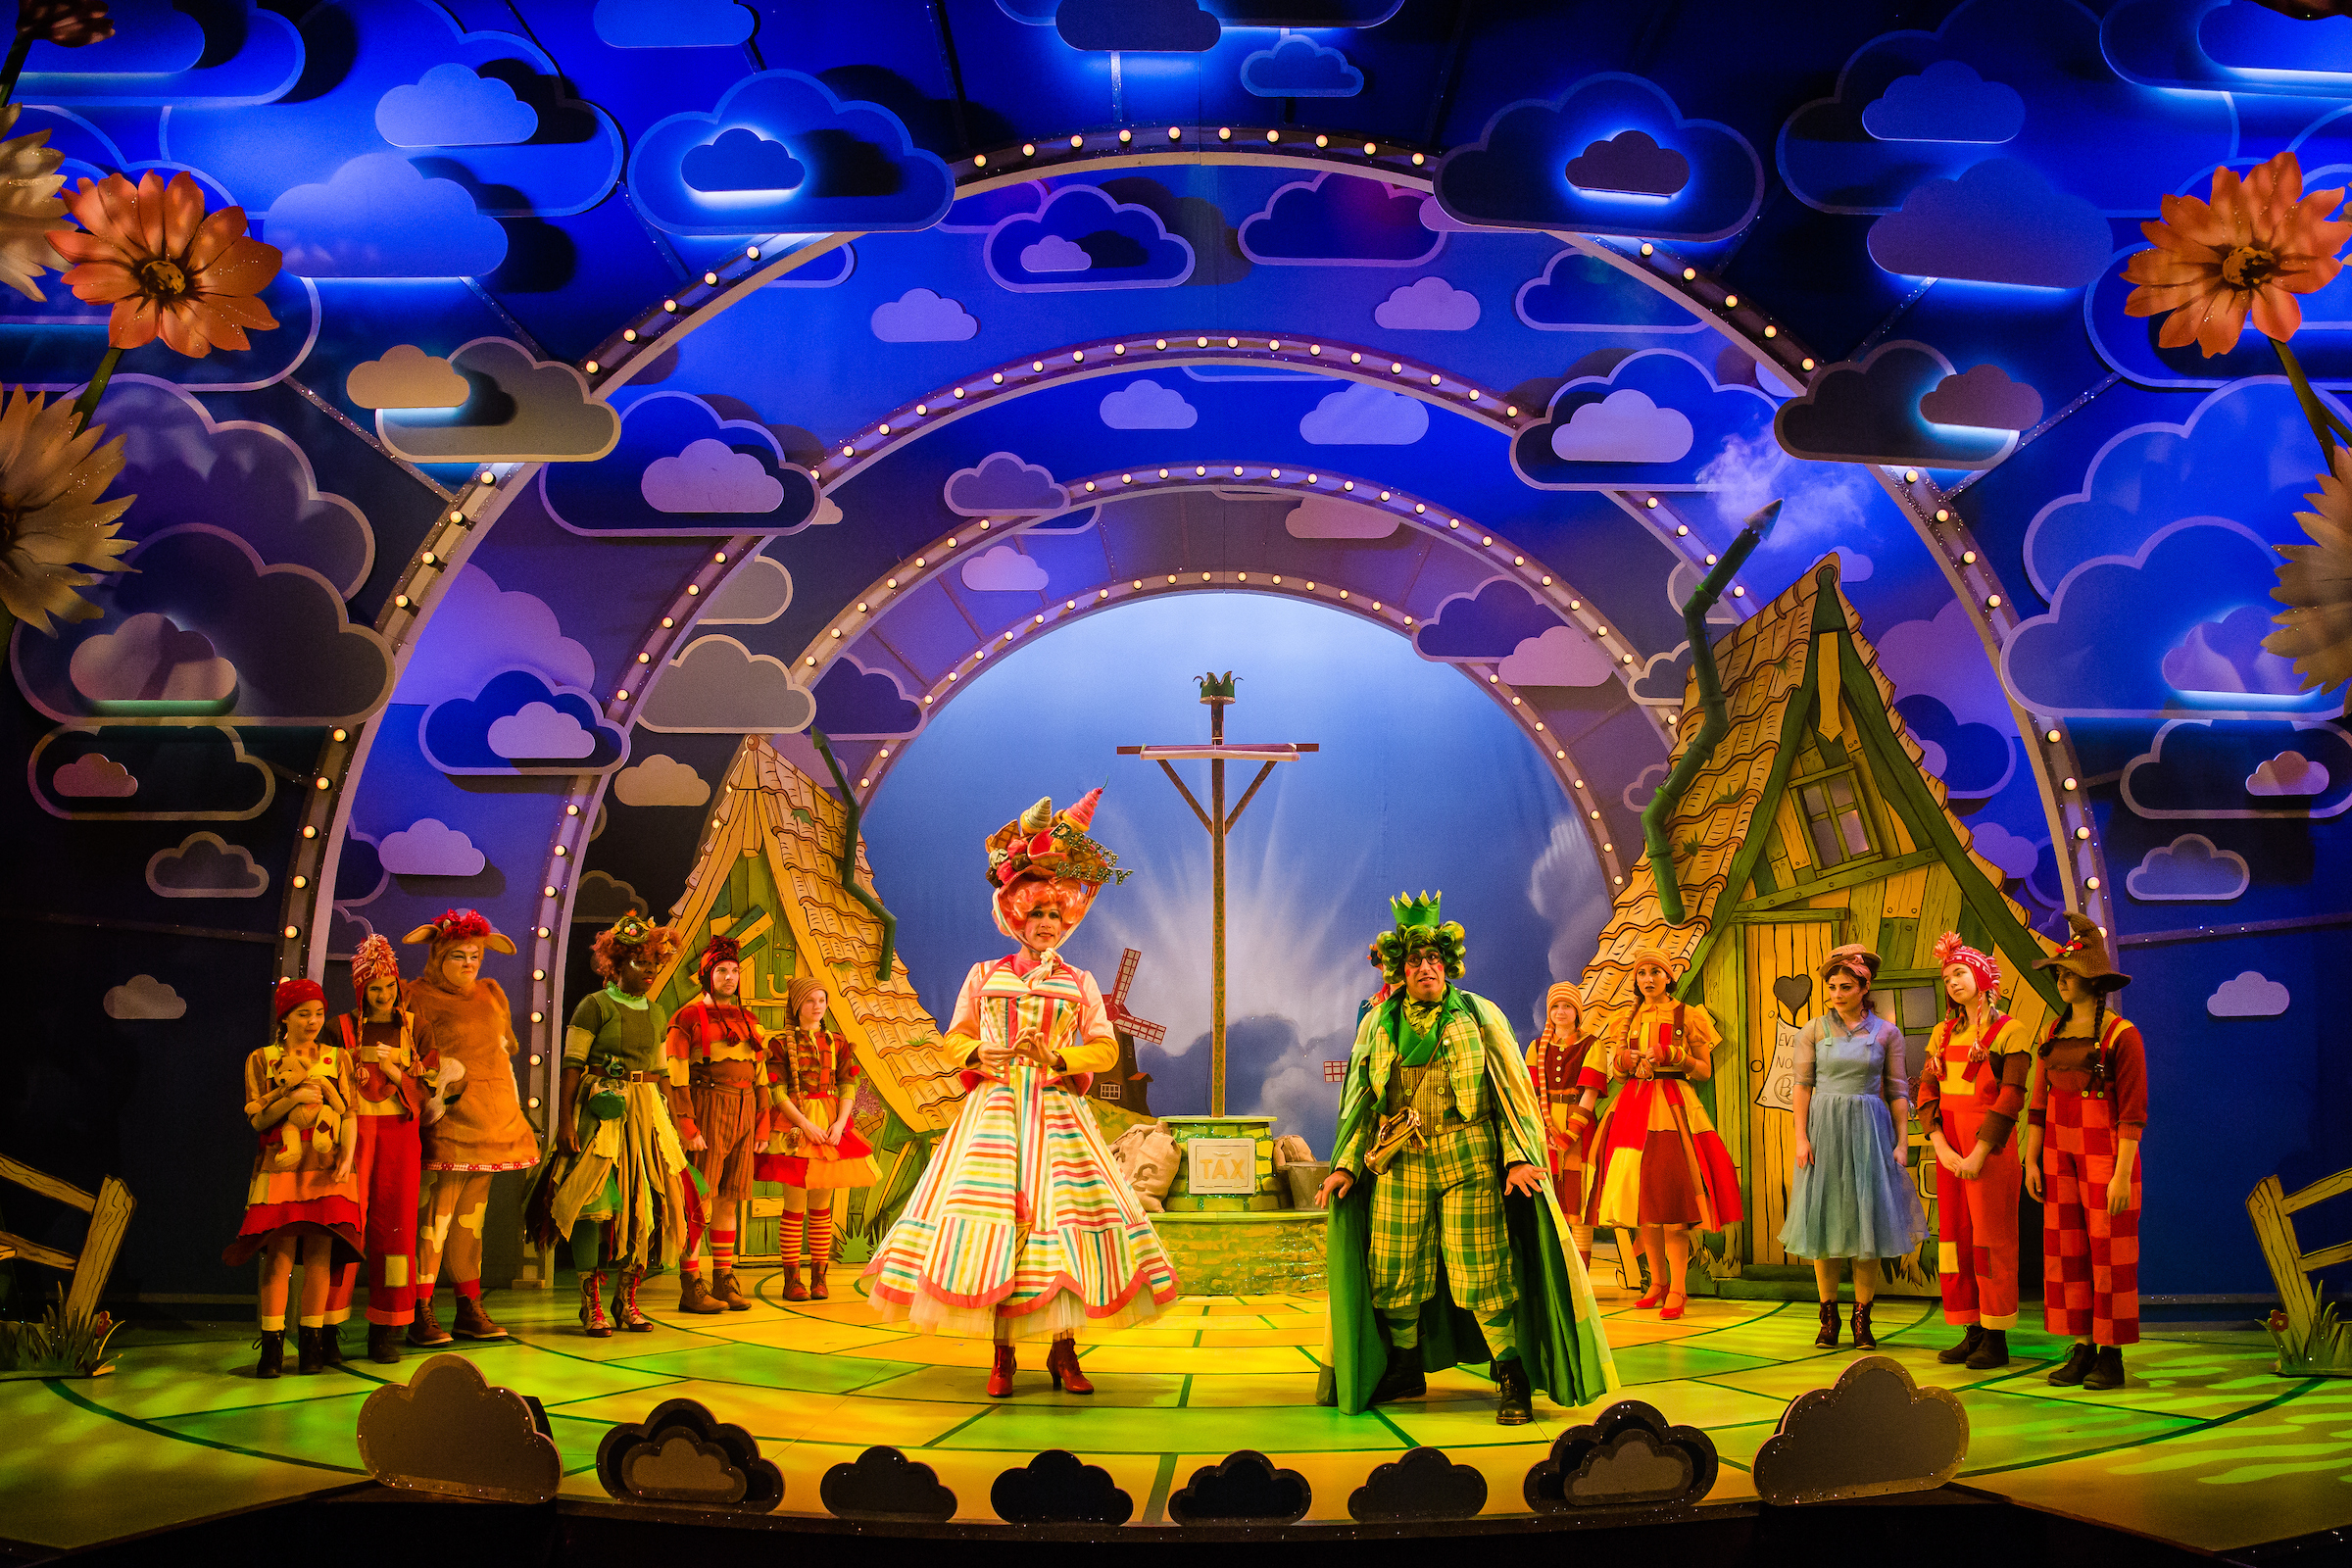 The 2017/18 panto production of Jack and The Beanstalk at Salisbury Playhouse. Picture by: The Other Richard